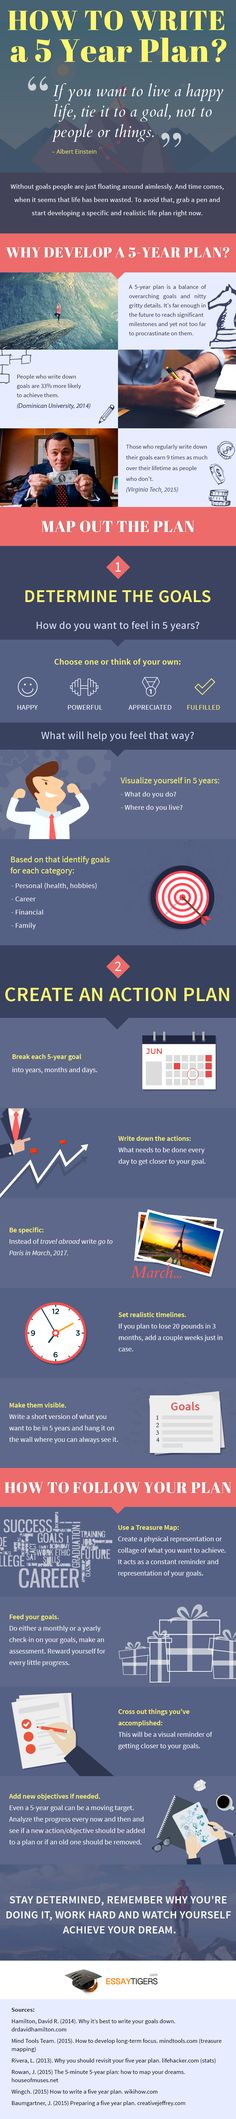 Having a strategic goal is good. It means you have something to look forward to. But it's much better when you actually start taking steps towards your goal. The infographic below showcases one of the most important steps in the goal-achieving process - writing a plan.